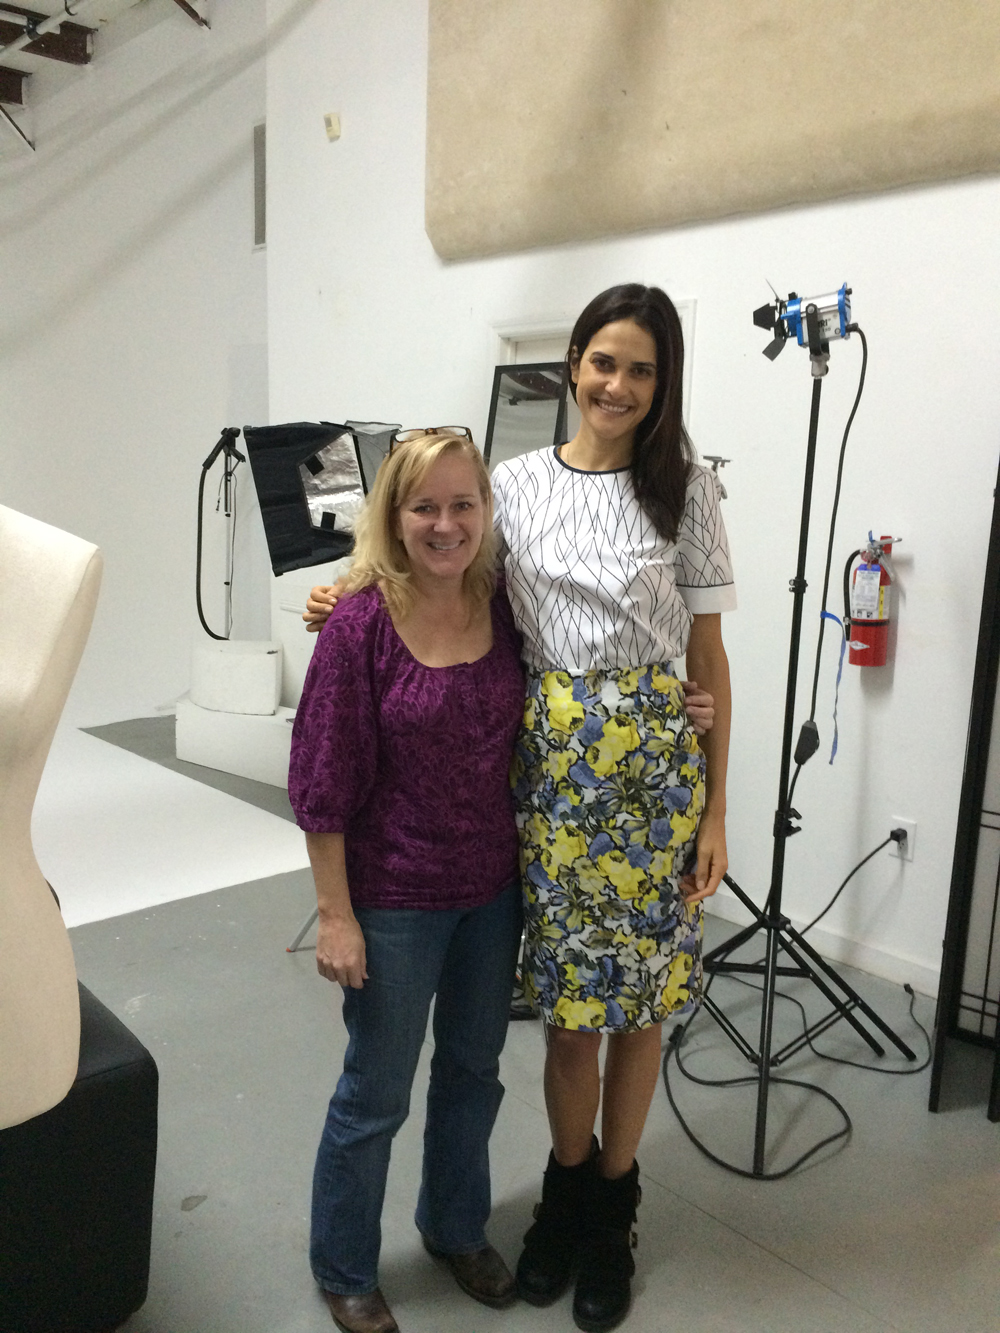 Art director Melinda Smith Monk with model Katarina Scola